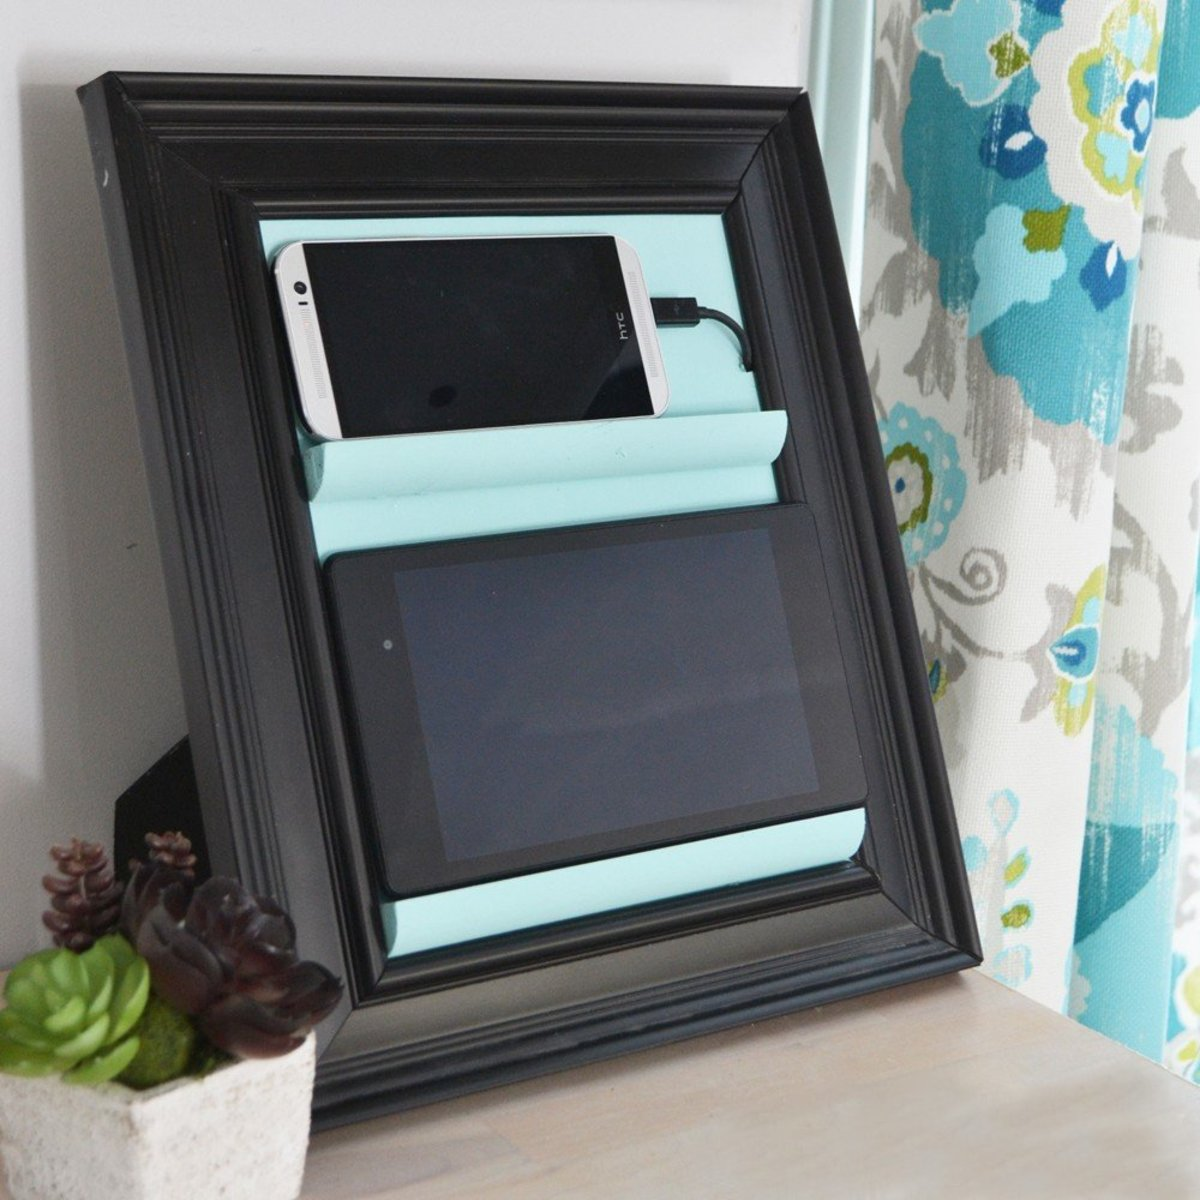 Charging station for electronic gadgets made from simple photo frame.